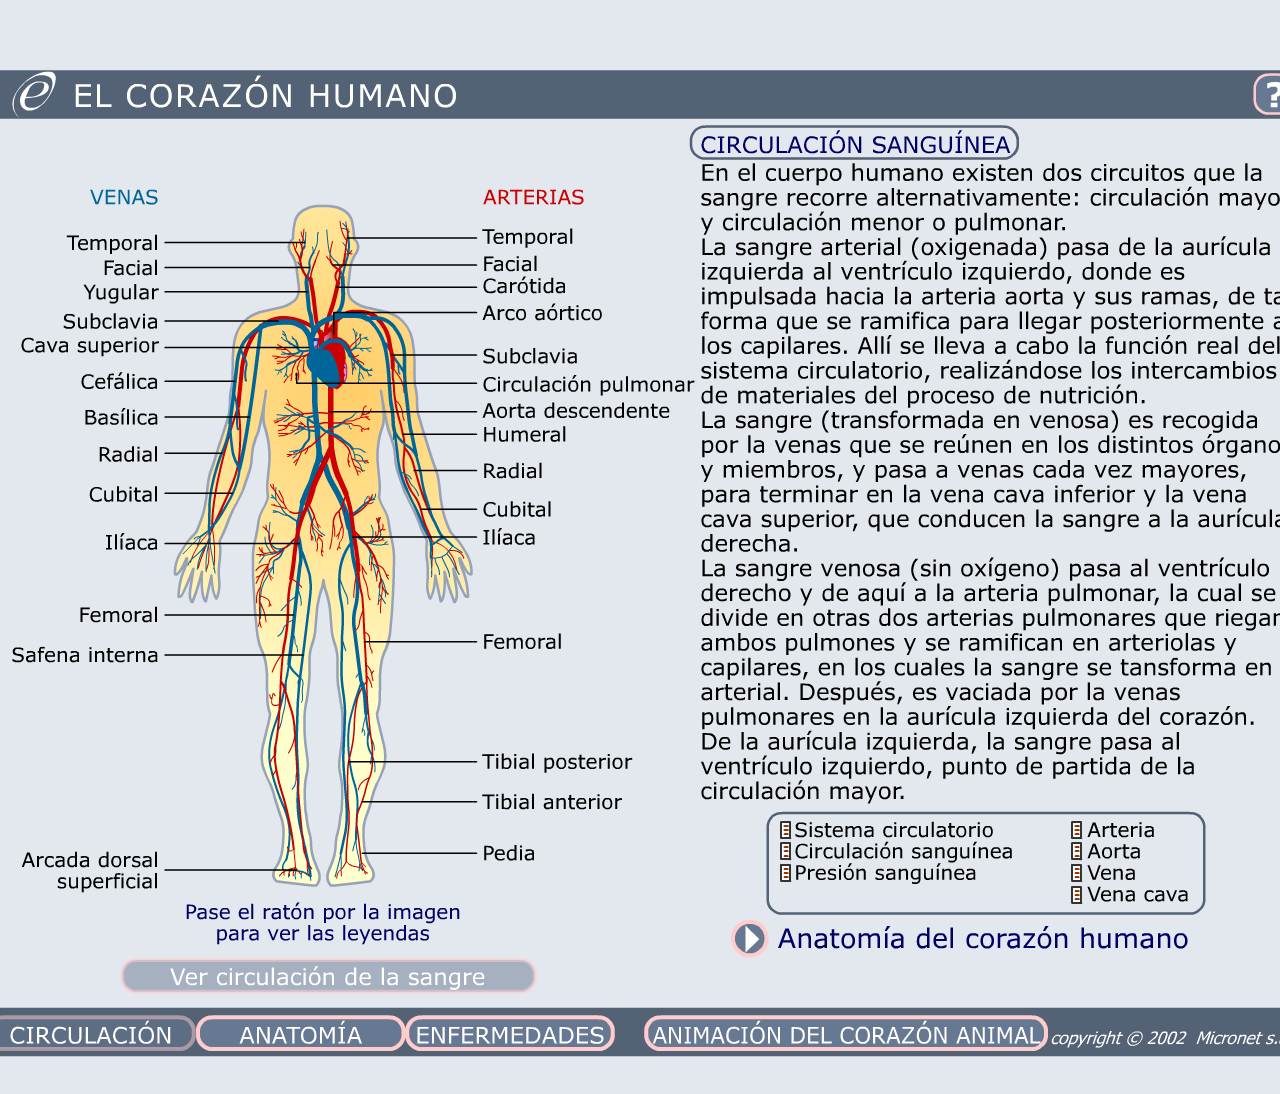 El corazon humano » Recursos educativos digitales